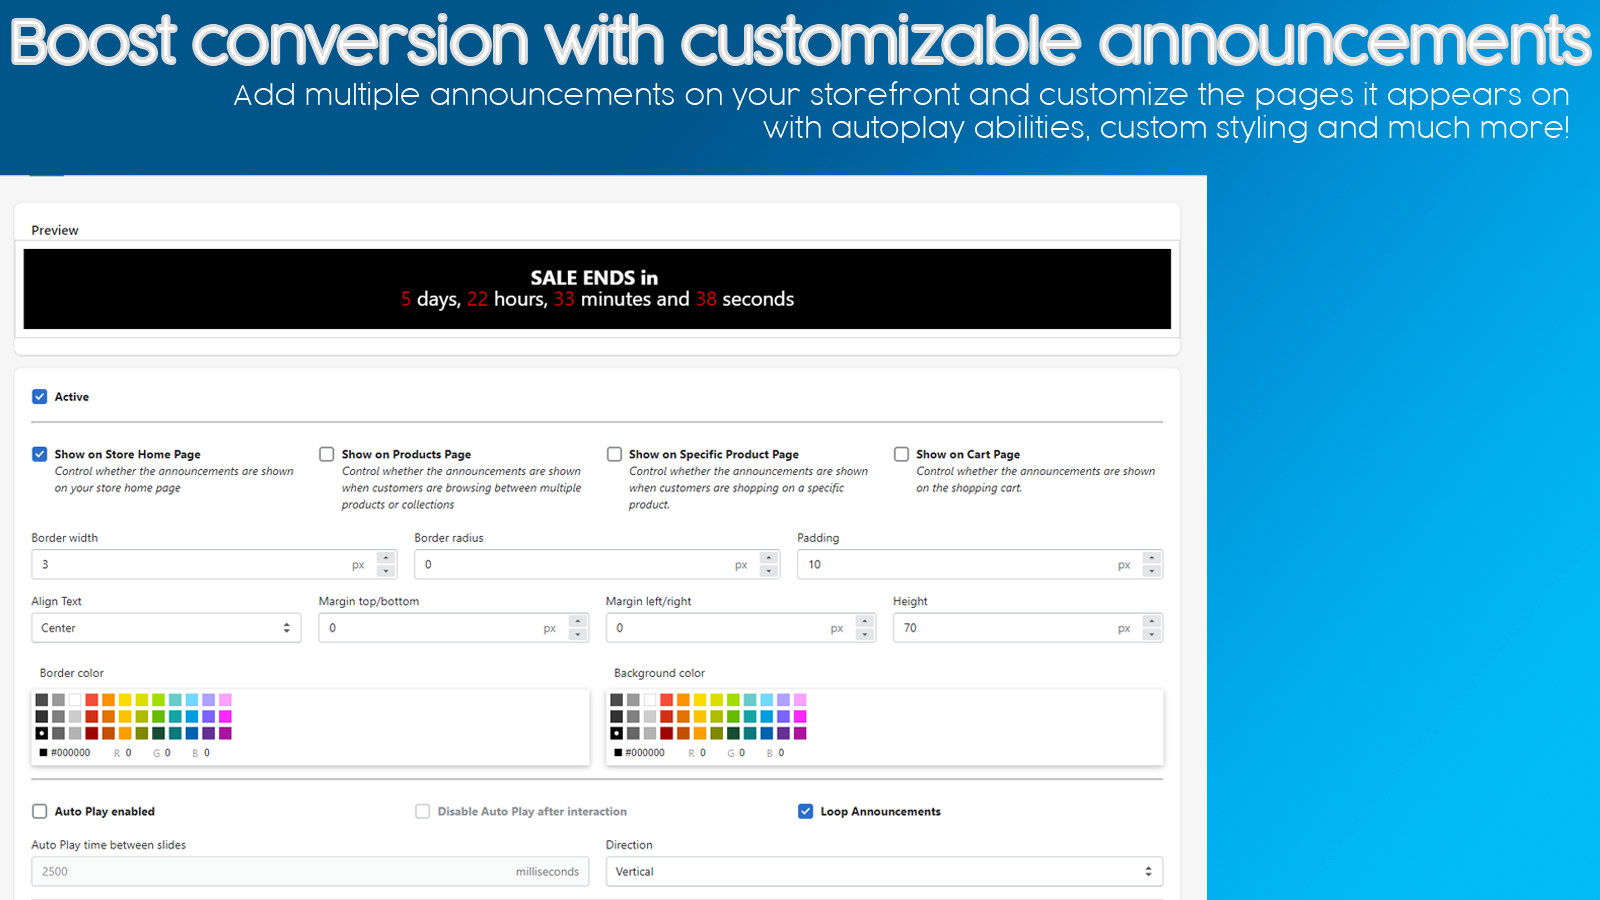 Boost conversion with customizable announcements